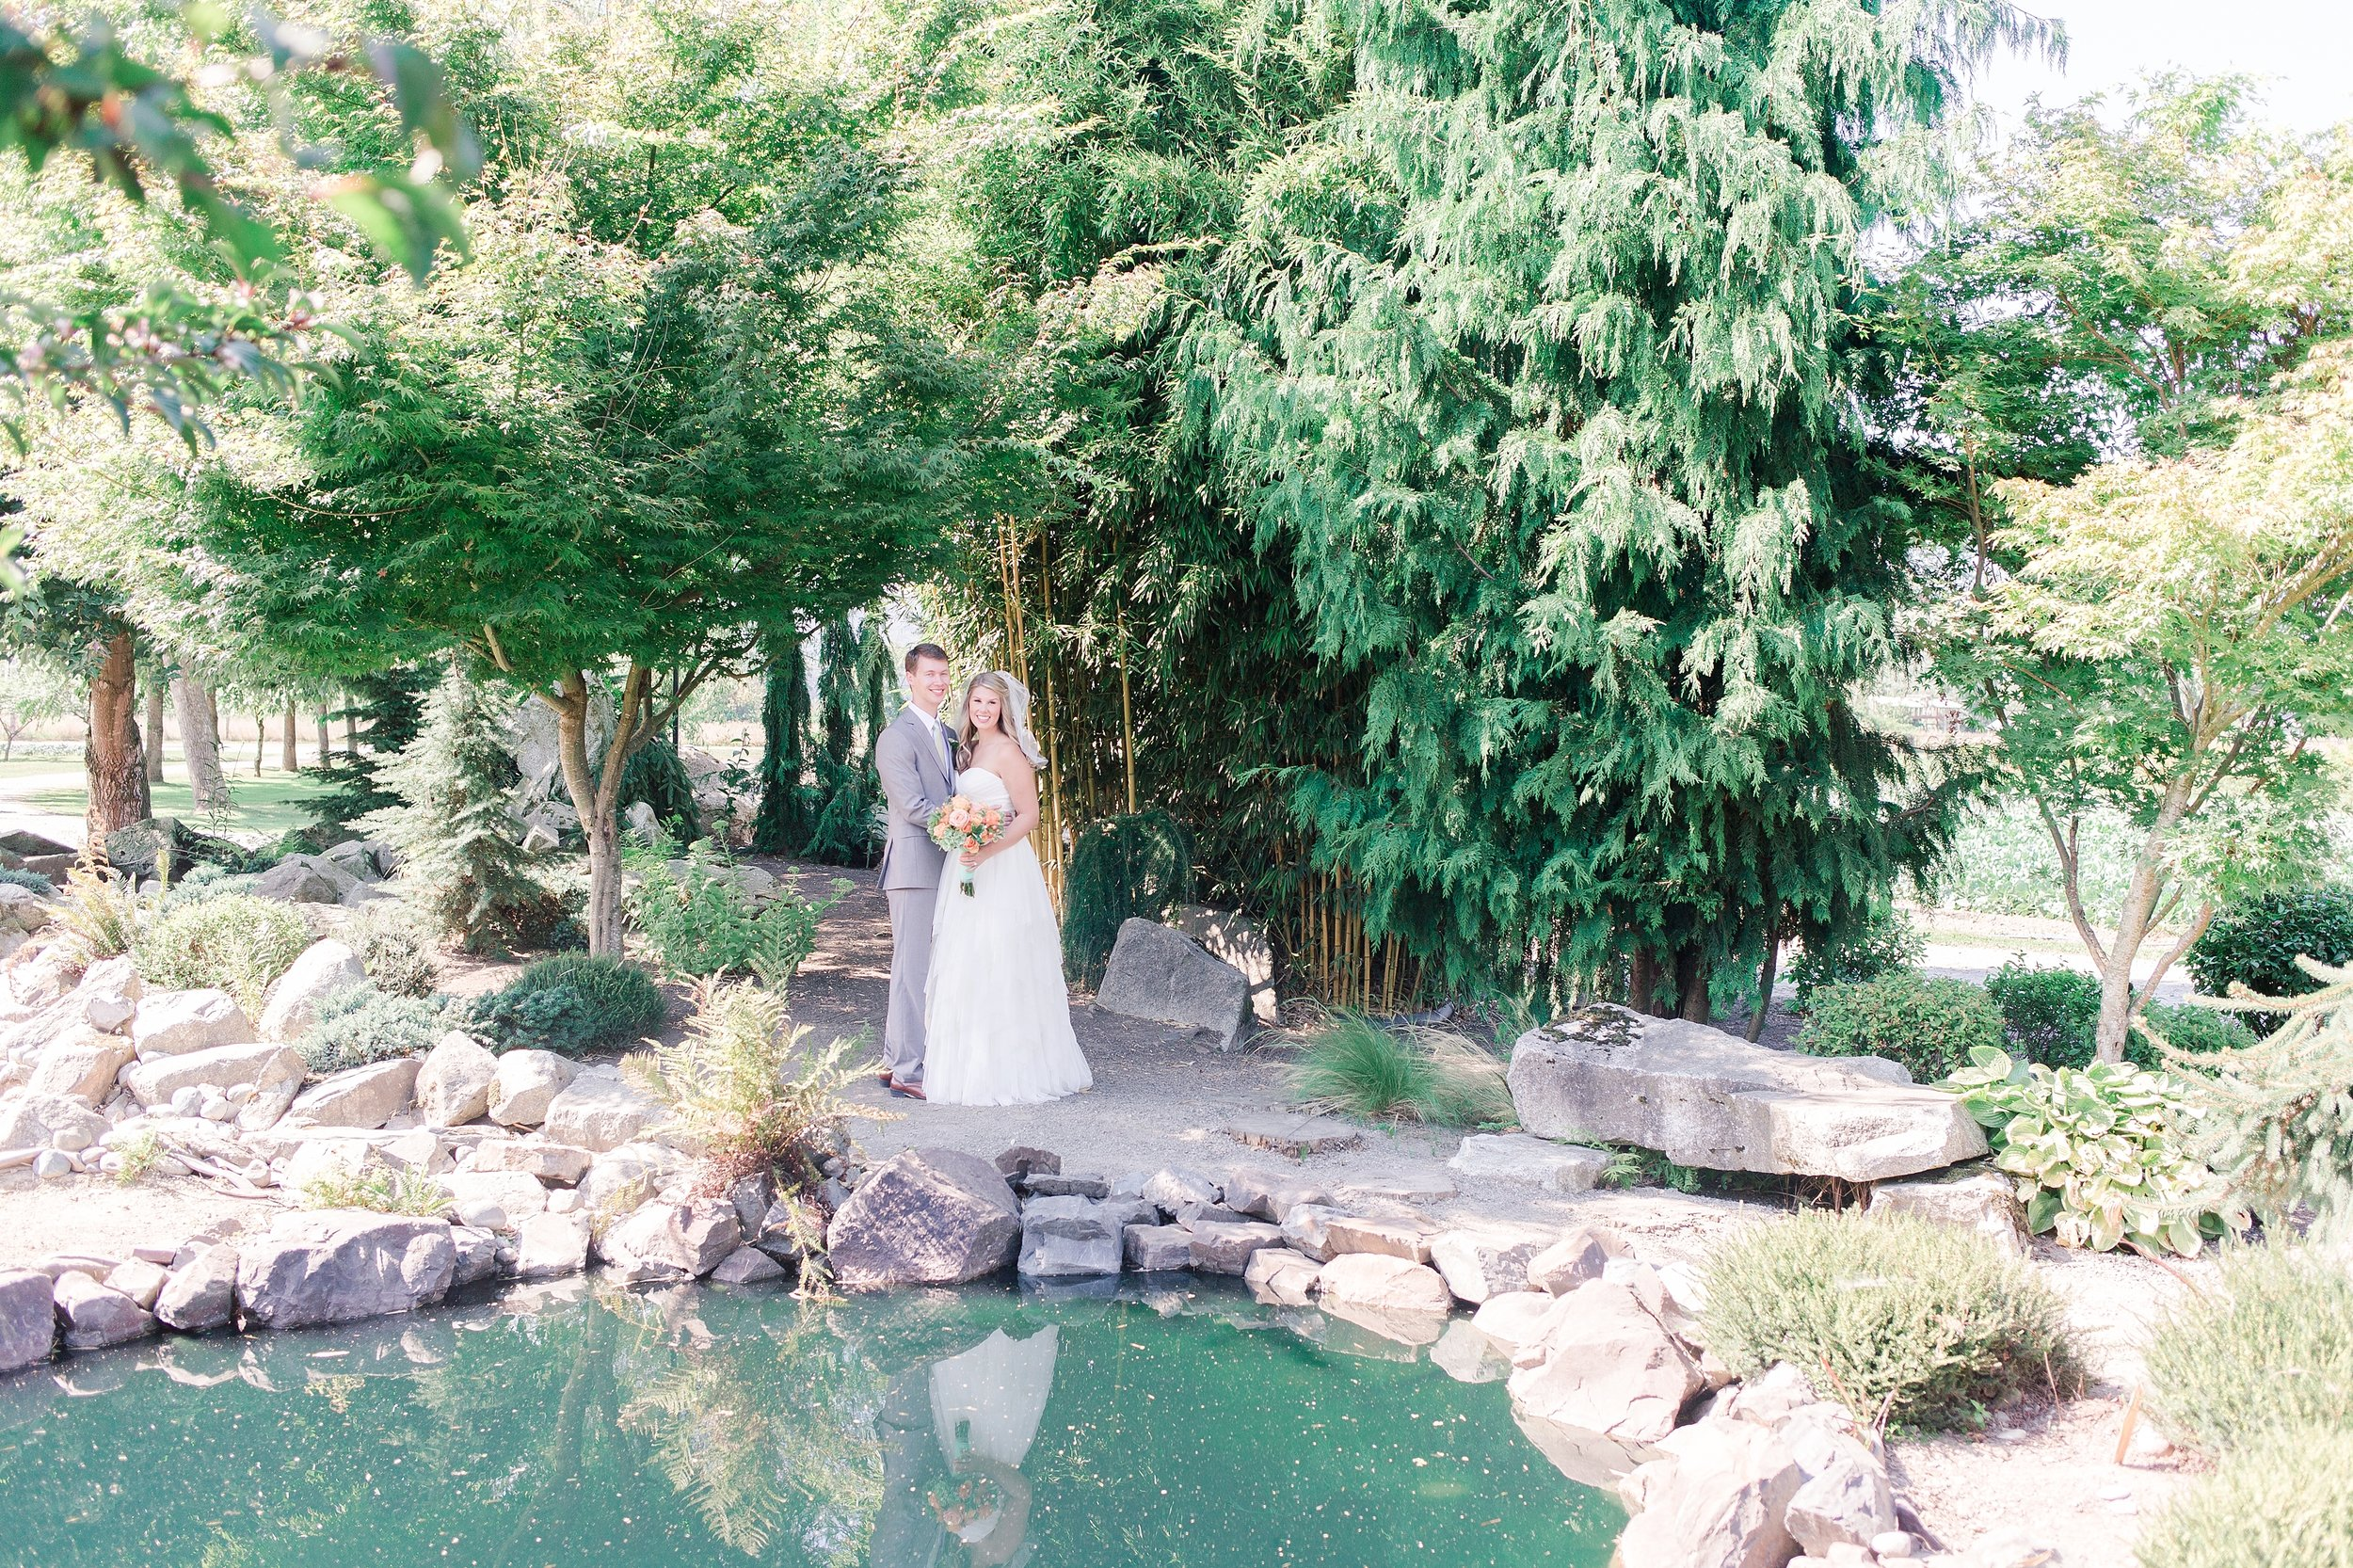 seattle wedding photographer_0216.jpg